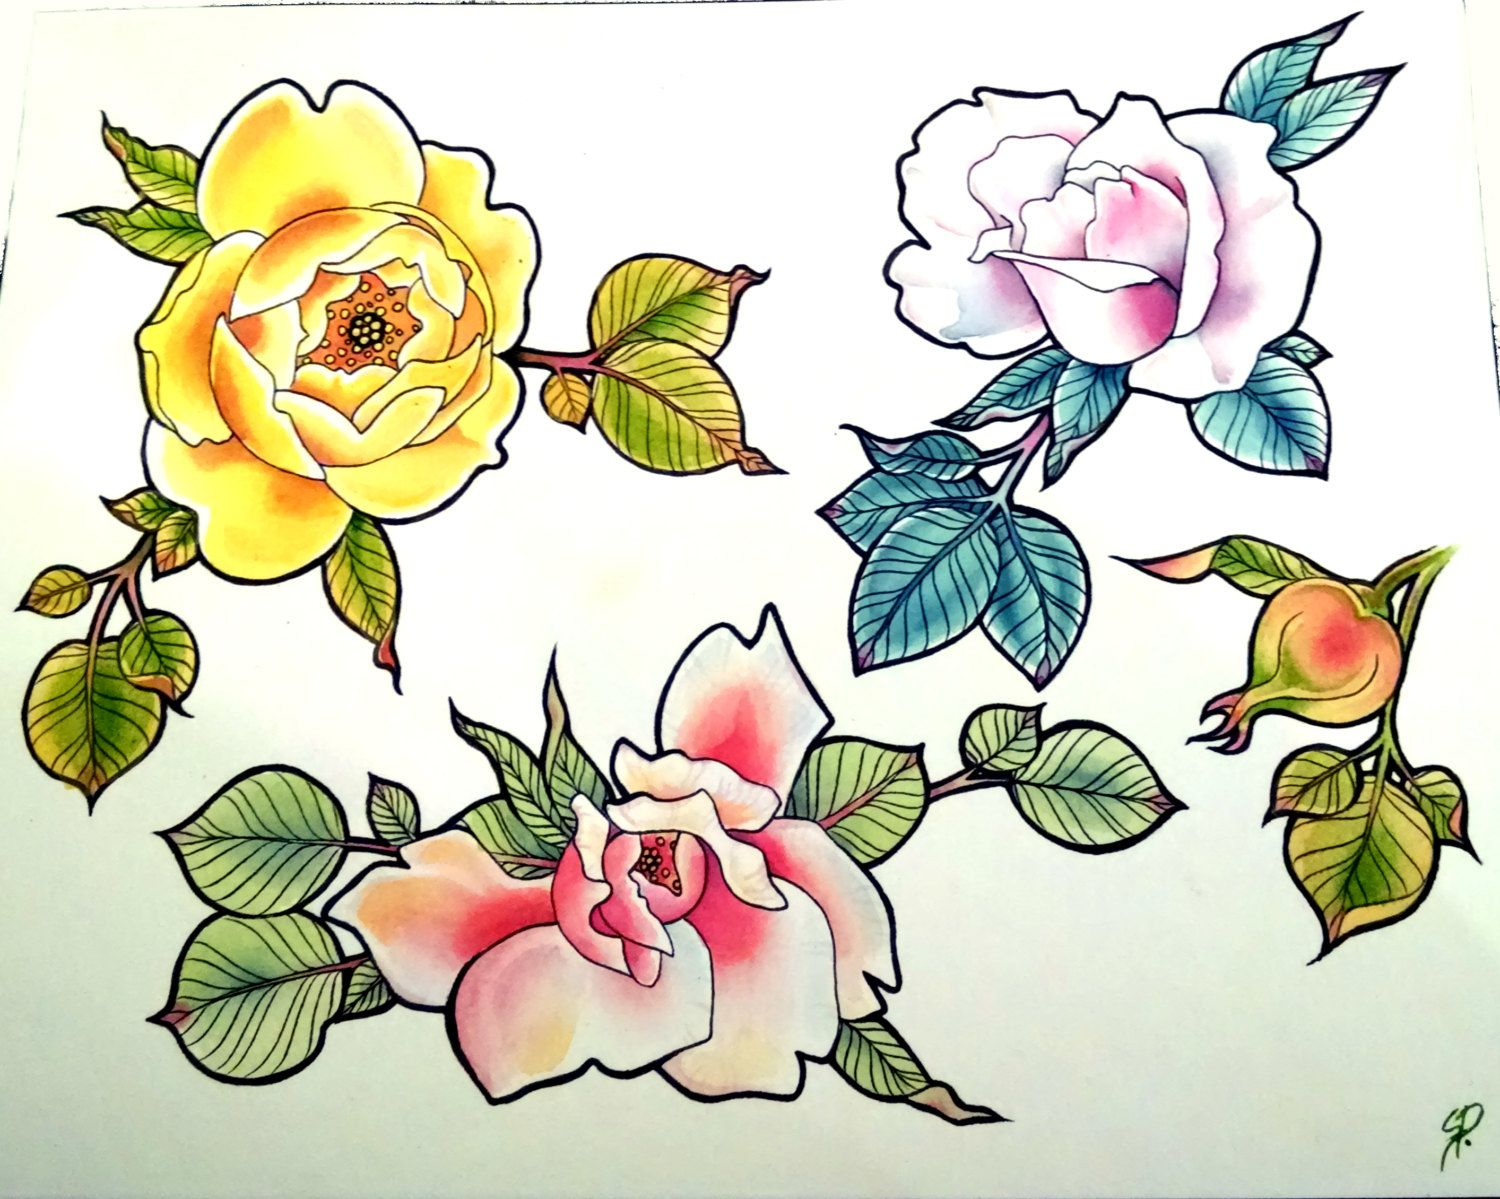 A Rose Tattoo Tattoo Flash Sheet Watercolor Painting By